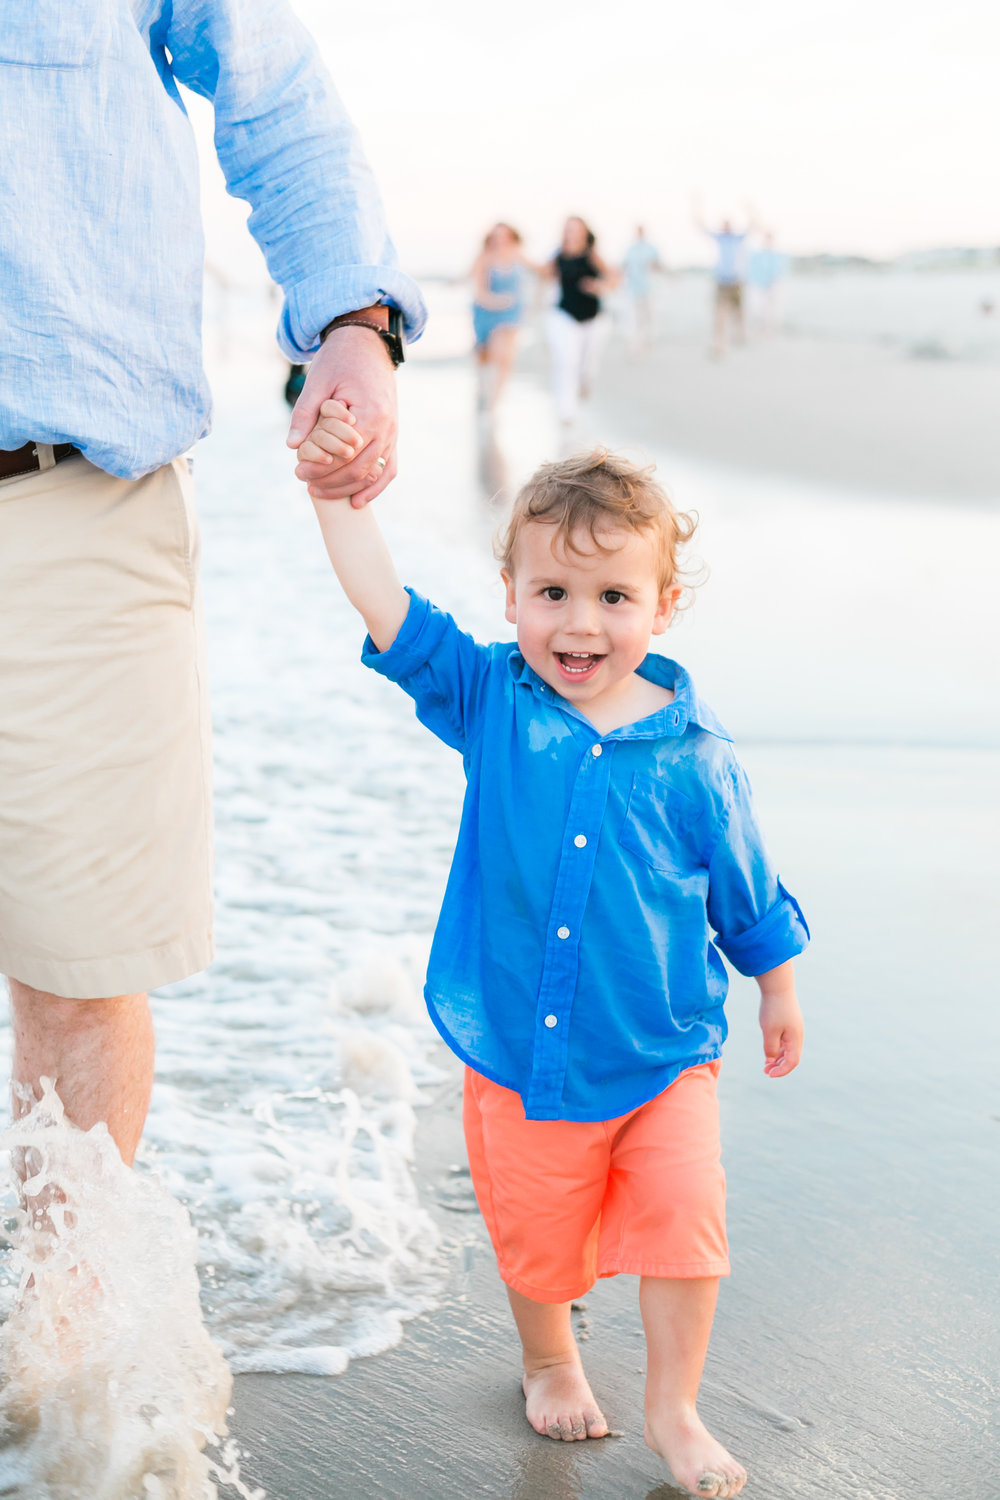 Magdalena Studios - Beach Family Photographer in Ocean City New Jersey NJ5.jpg